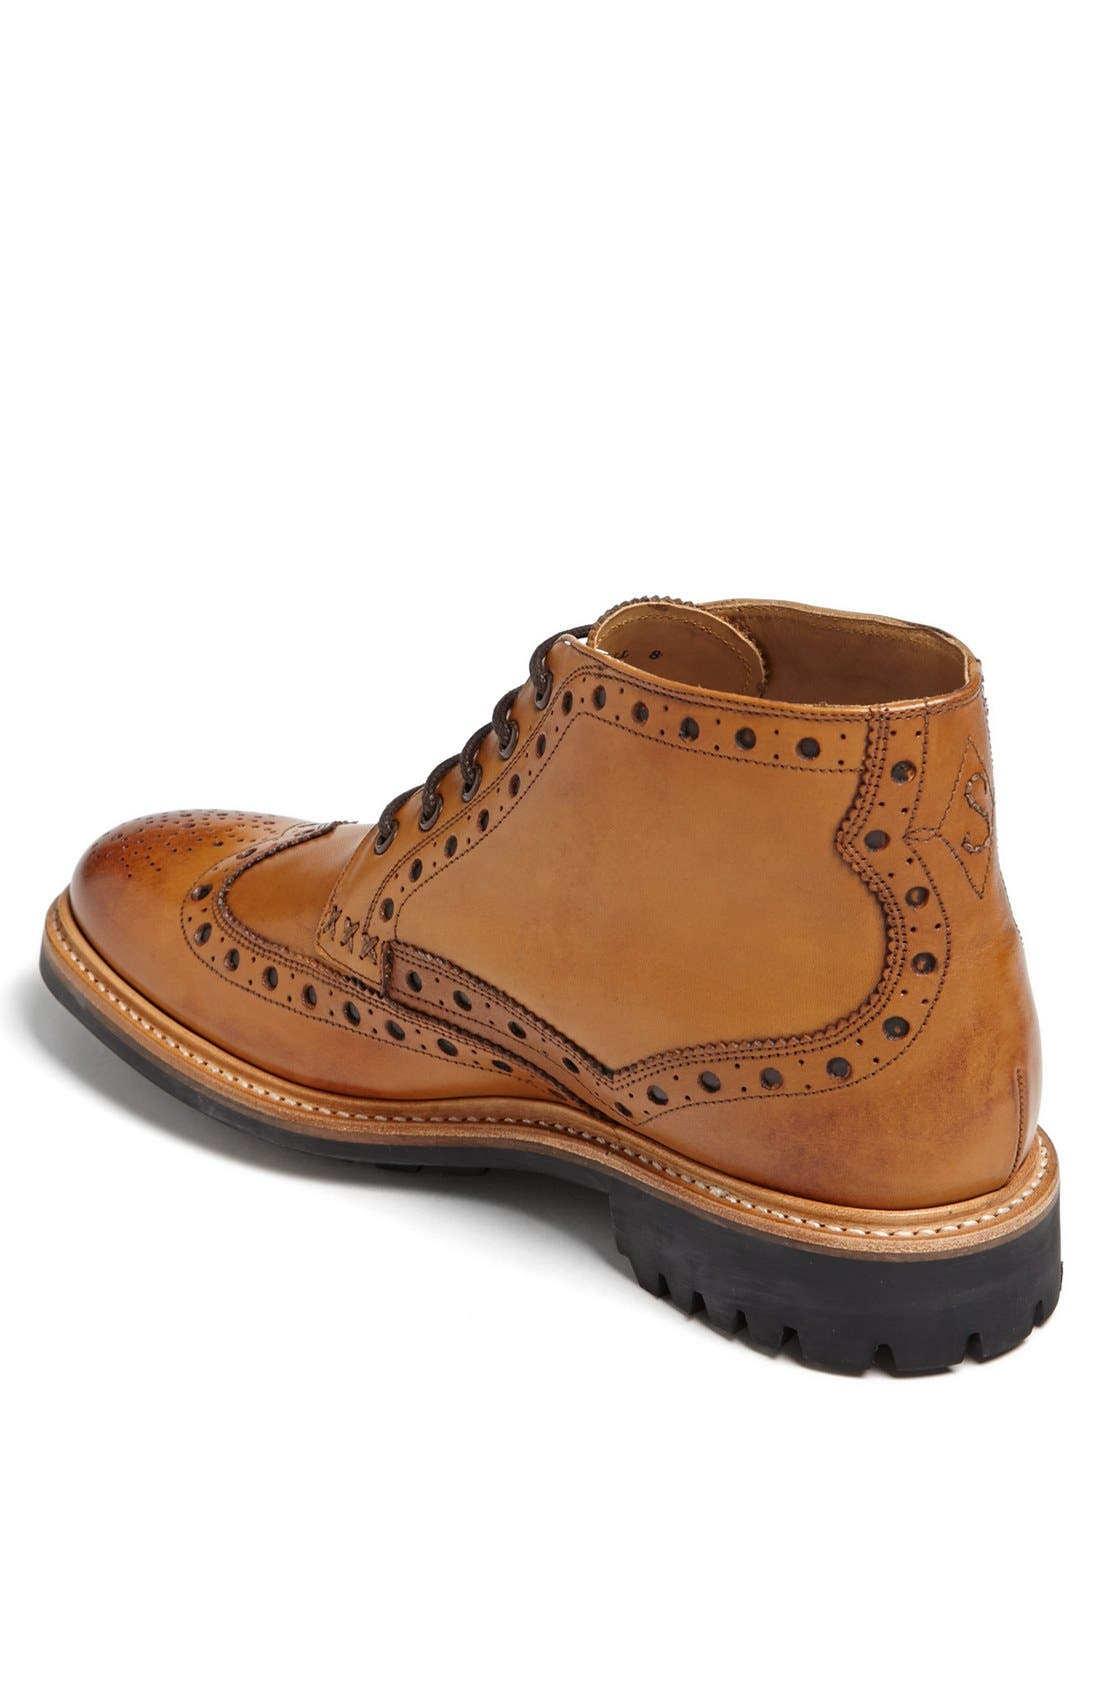 Alternate Image 2  - Oliver Sweeney 'Lawshall' Wingtip Boot